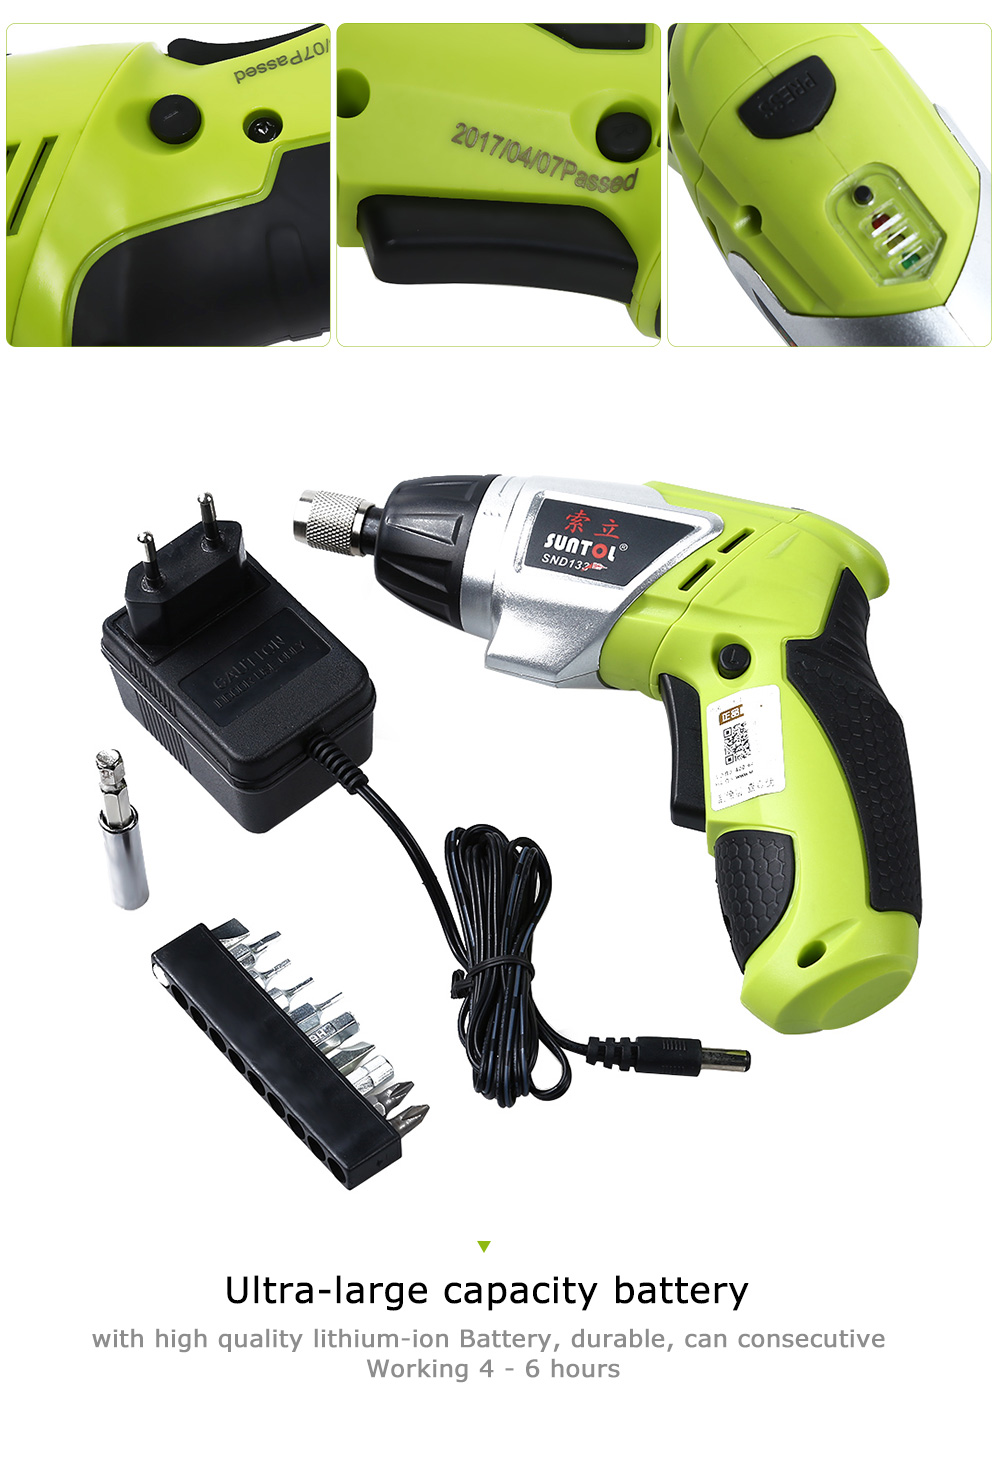 Heacdba5126324ec8a2e6e9f7bb83ea46k - 3.6V Rechargeable Battery Cordless Electric Drill Screwdriver with Bits Set